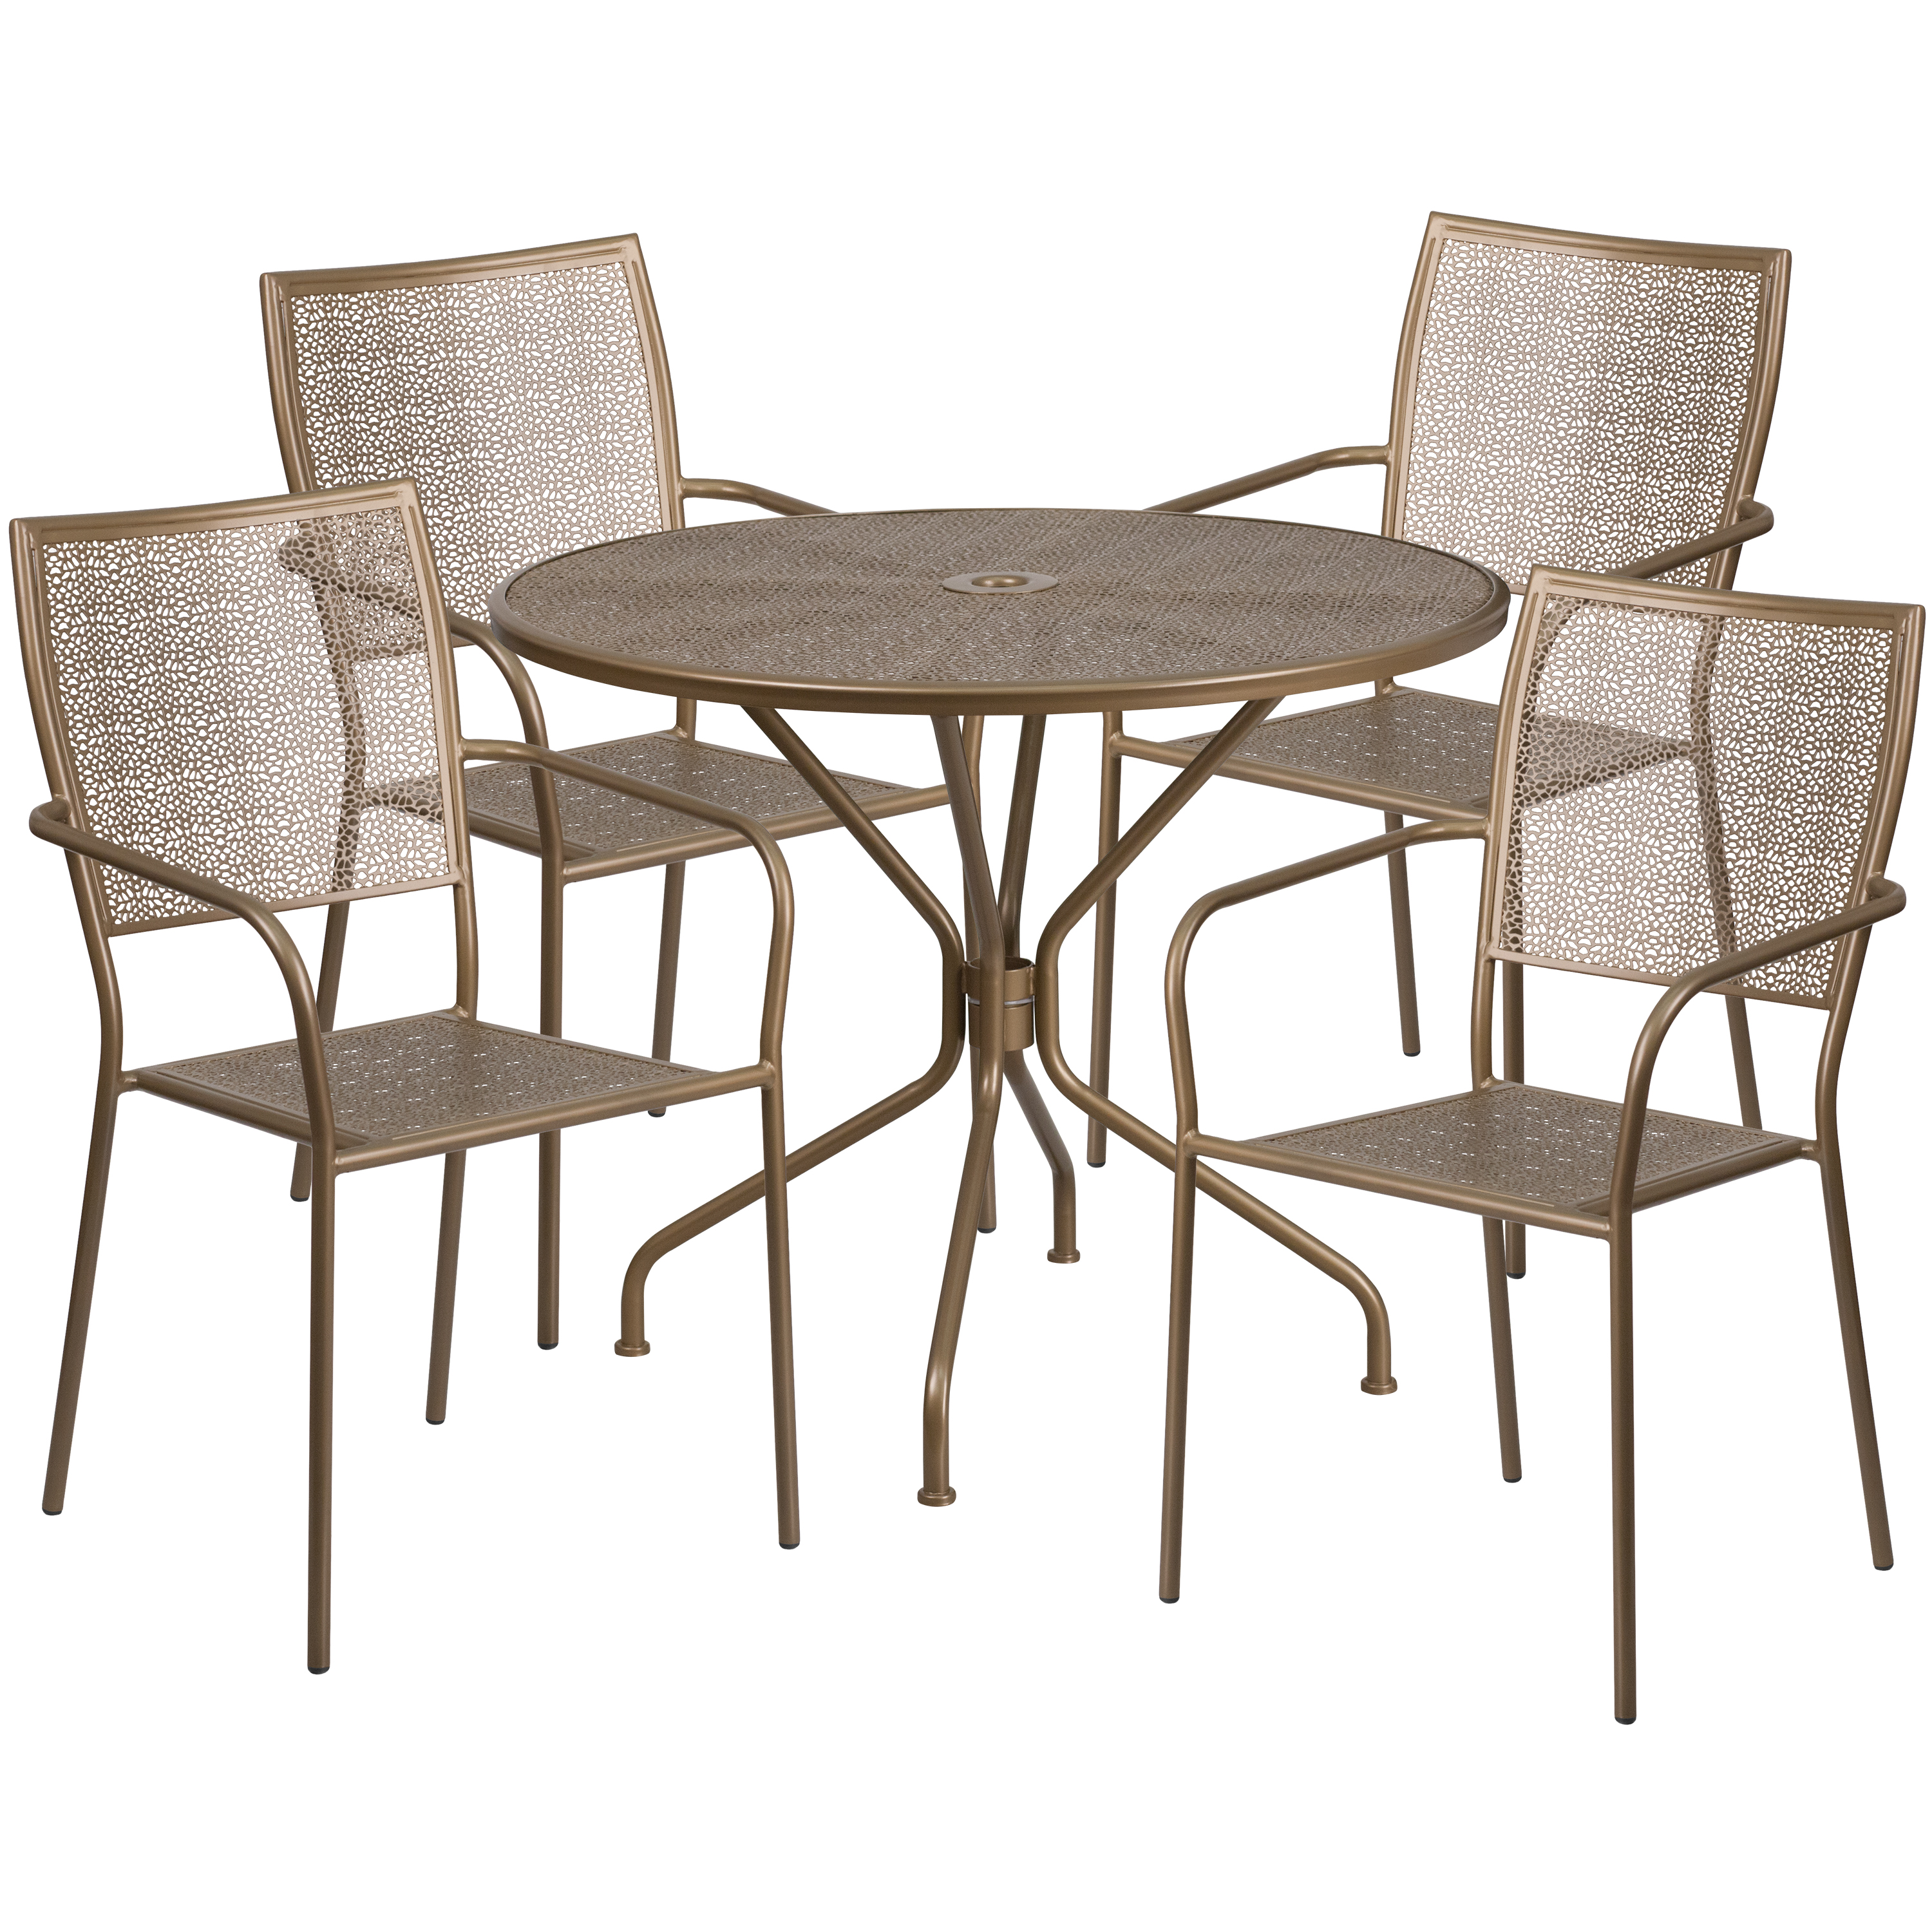 "Flash Furniture 35.25"" Round Indoor-Outdoor Steel Patio Table Set with 4 Square Back Chairs, Multiple Colors"